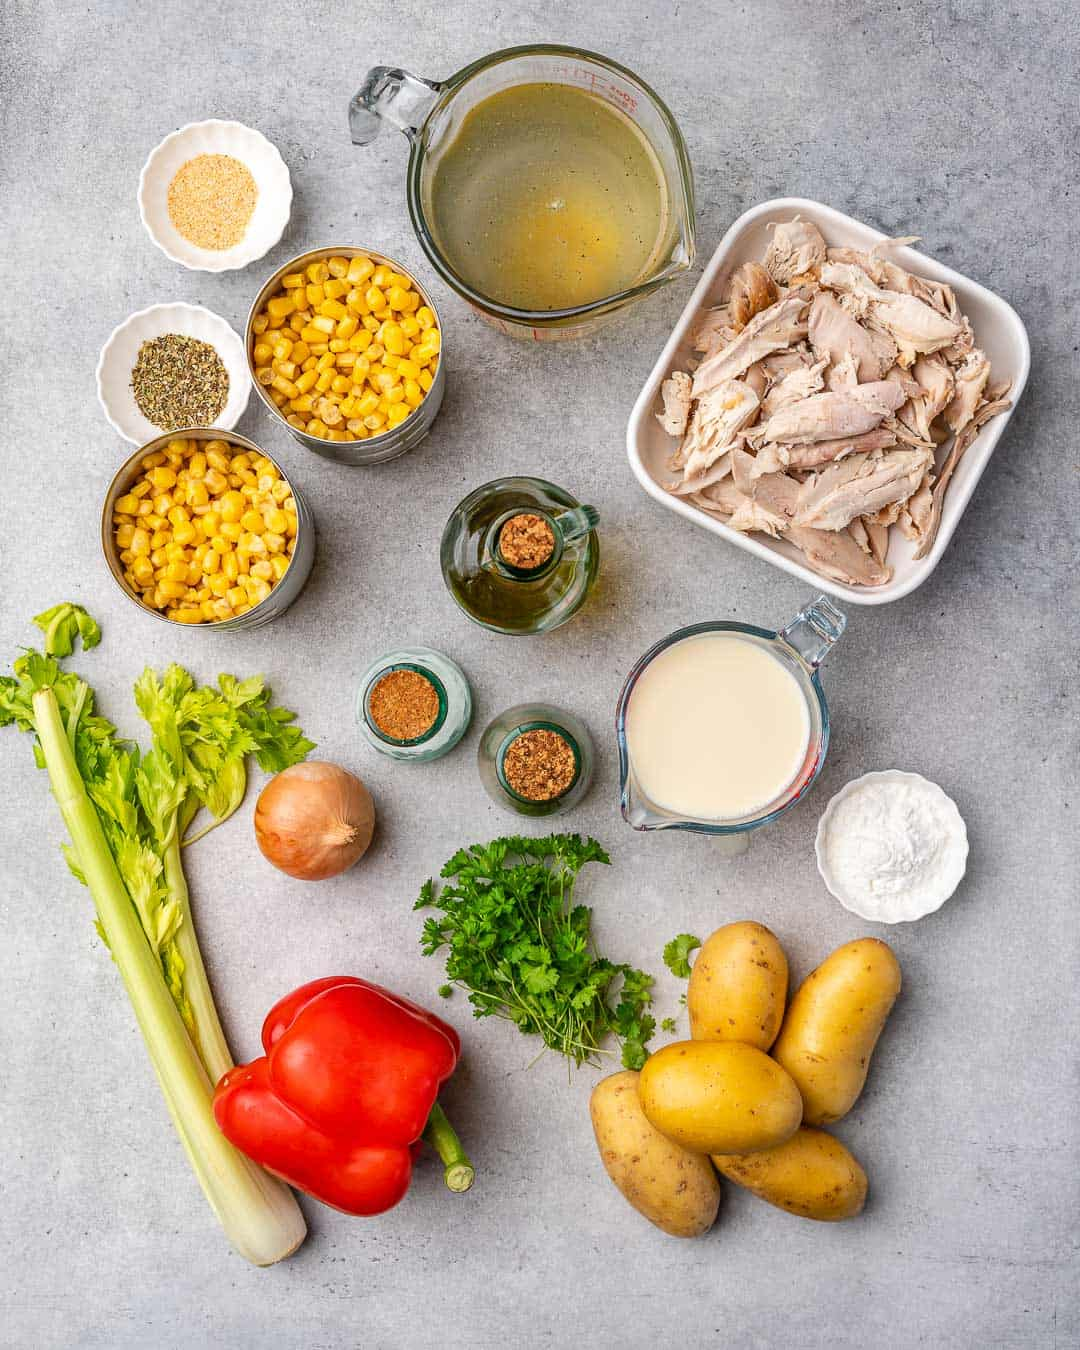 Ingredients for healthy turkey corn chowder on counter.